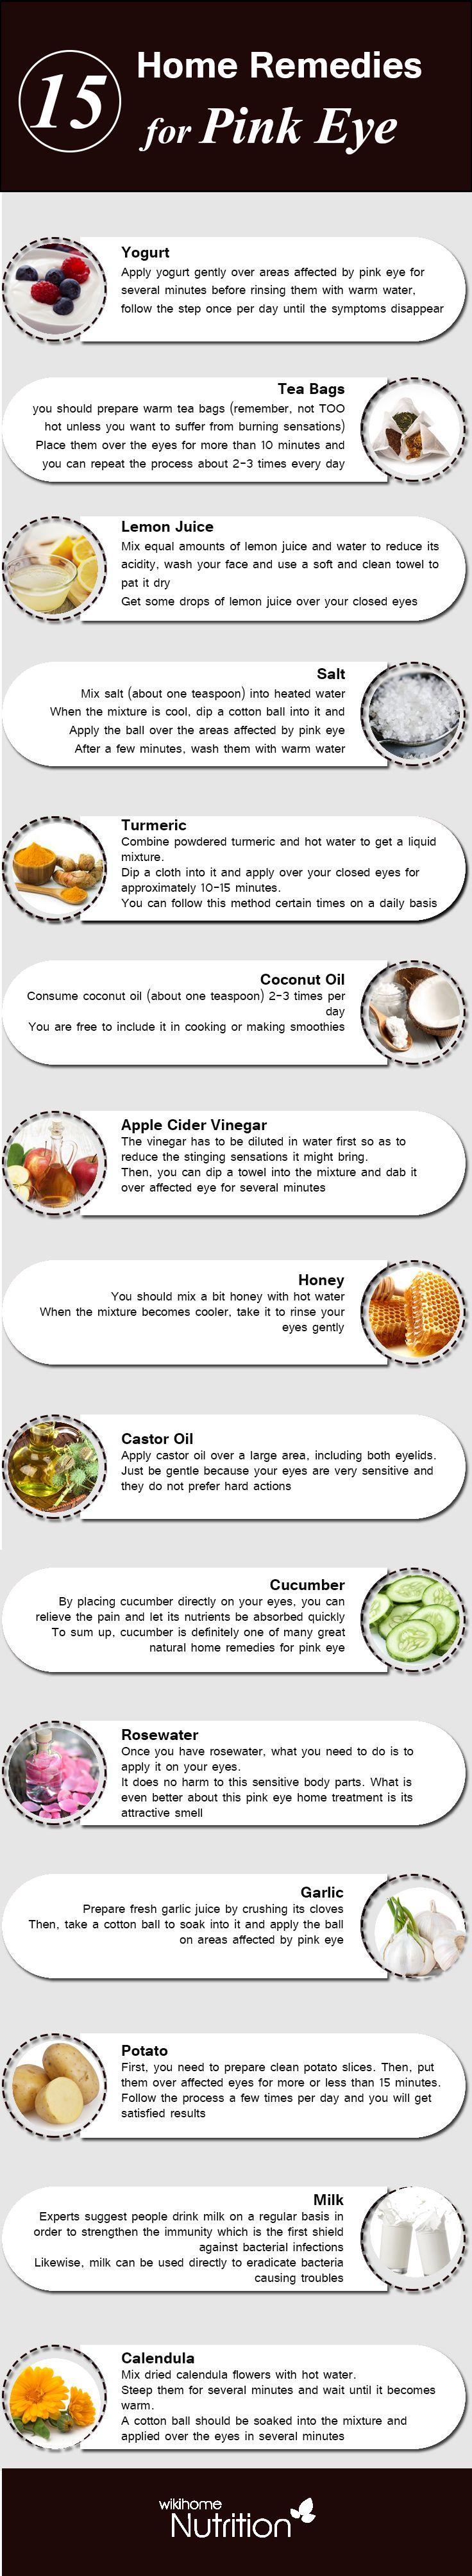 Home remedies for Pink Eyes: pink eye is the case when the eye lining becomes red and swollen, along with painful feeling. Check out How to get rid of Pink Eyes